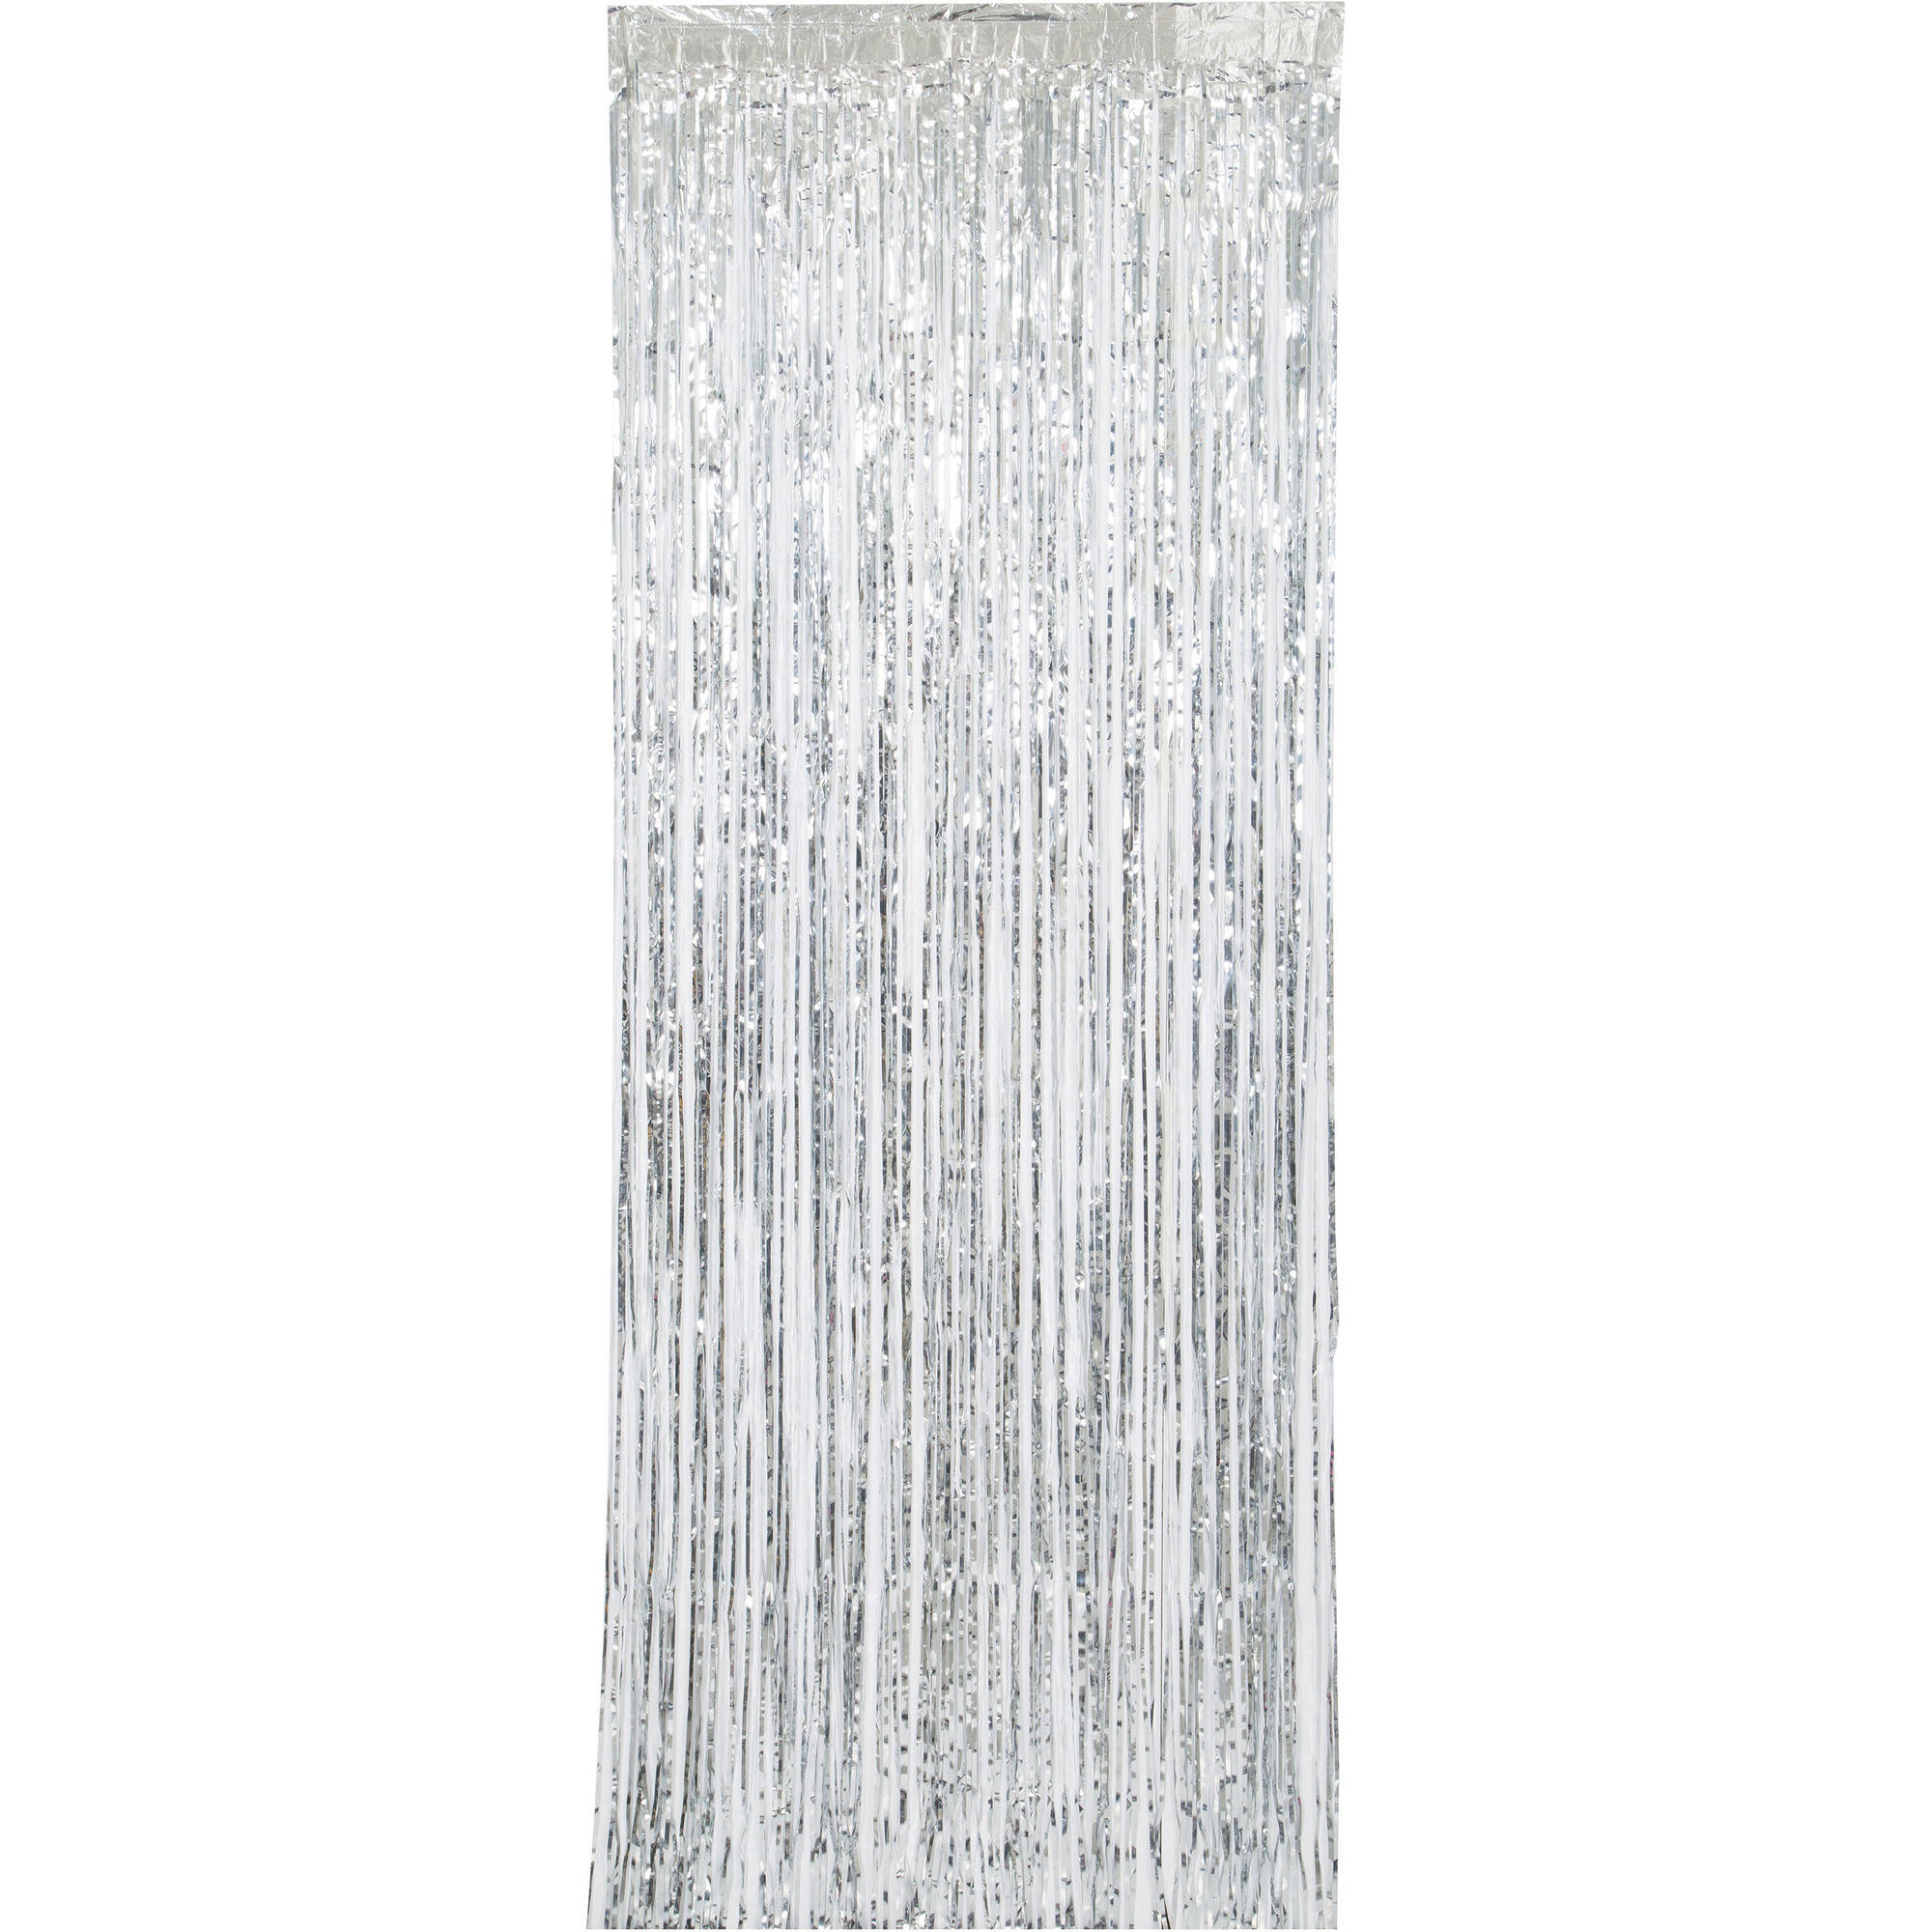 Silver Foil Fringe Curtain, 3ft x 8ft